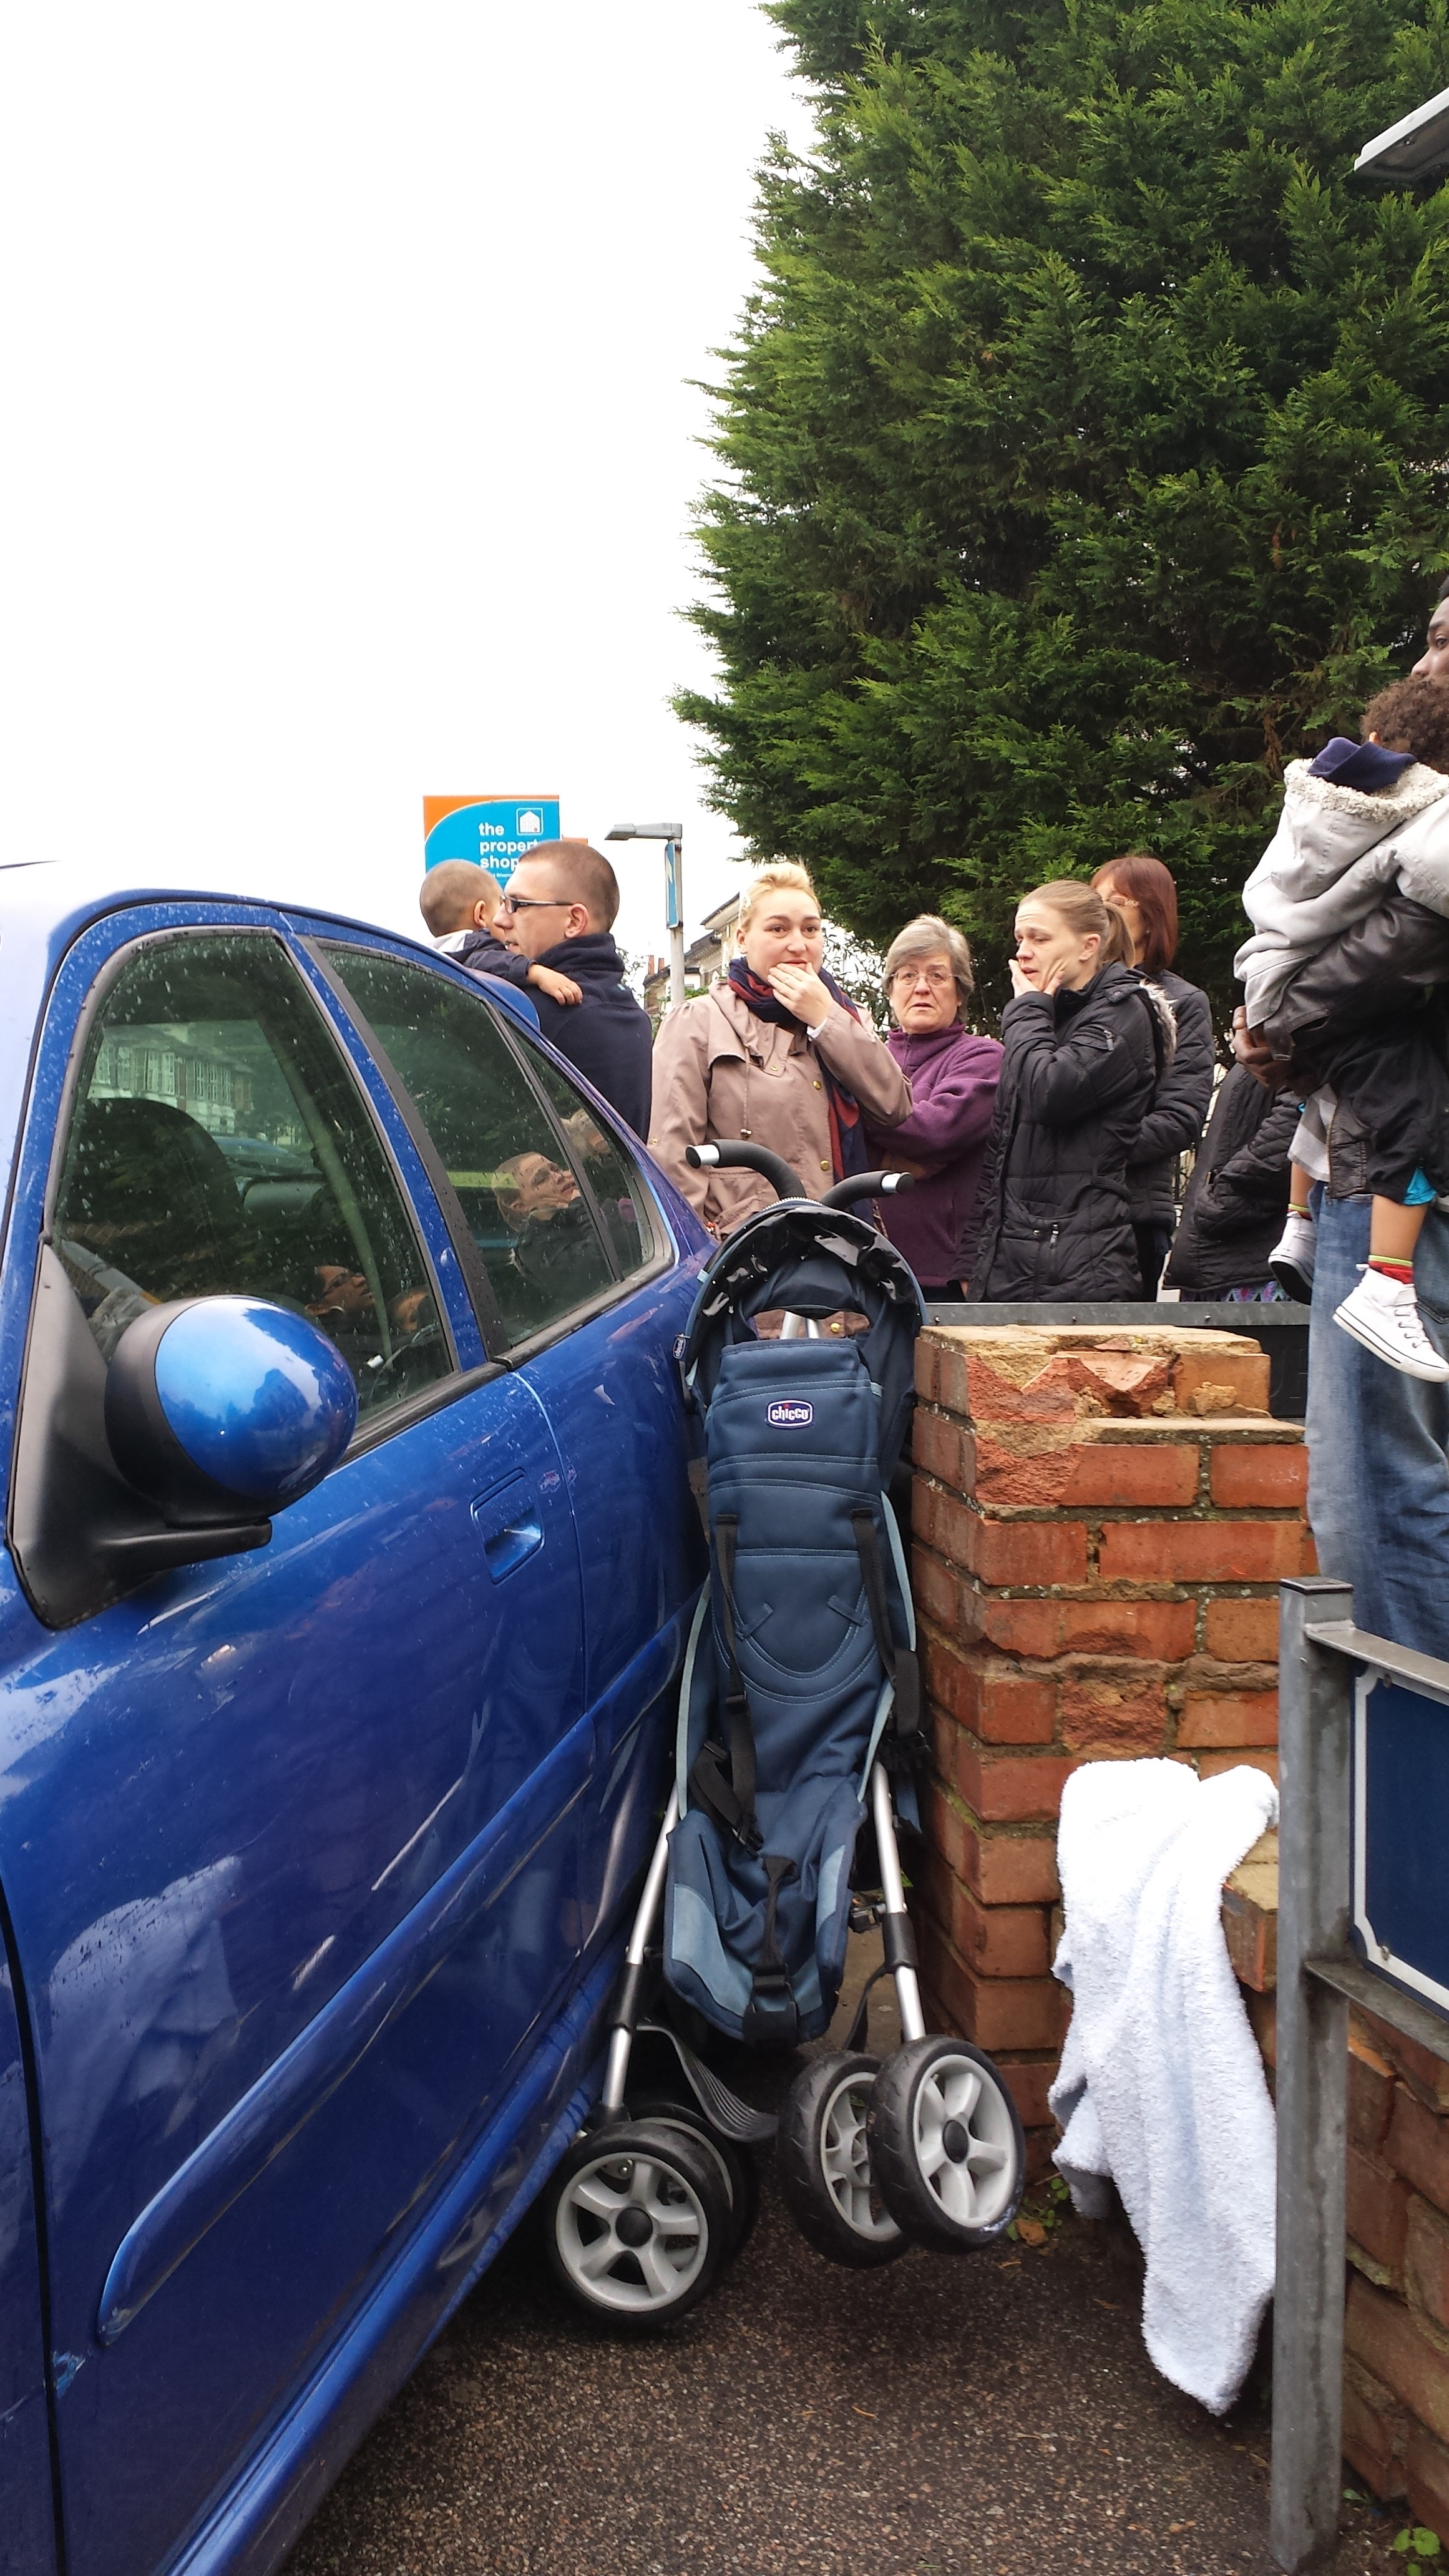 Shocking images show toddler was 'centimetres from death' following Gravesend buggy smash